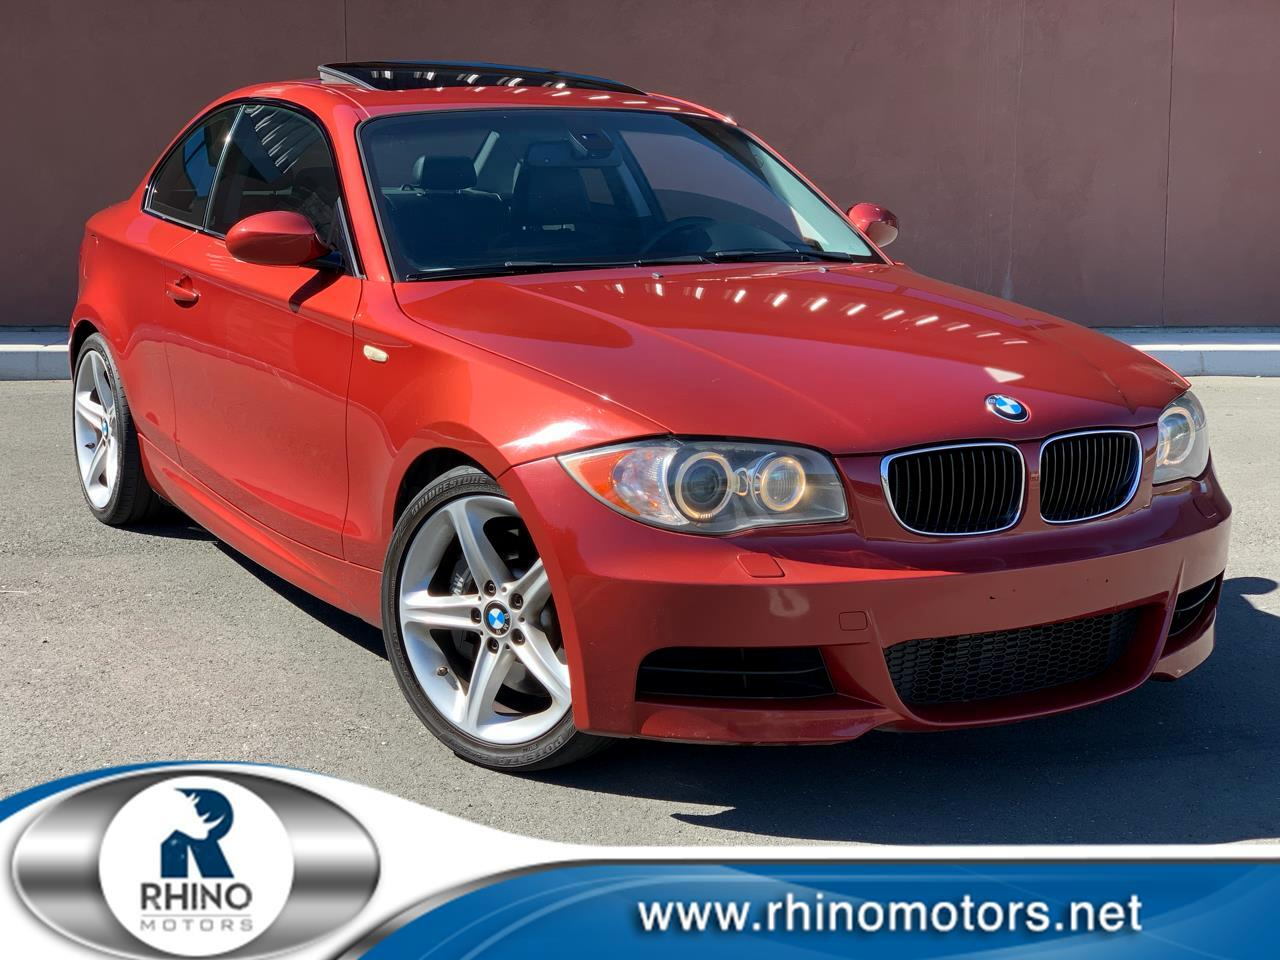 BMW 1 Series 2dr Cpe 135i 2009